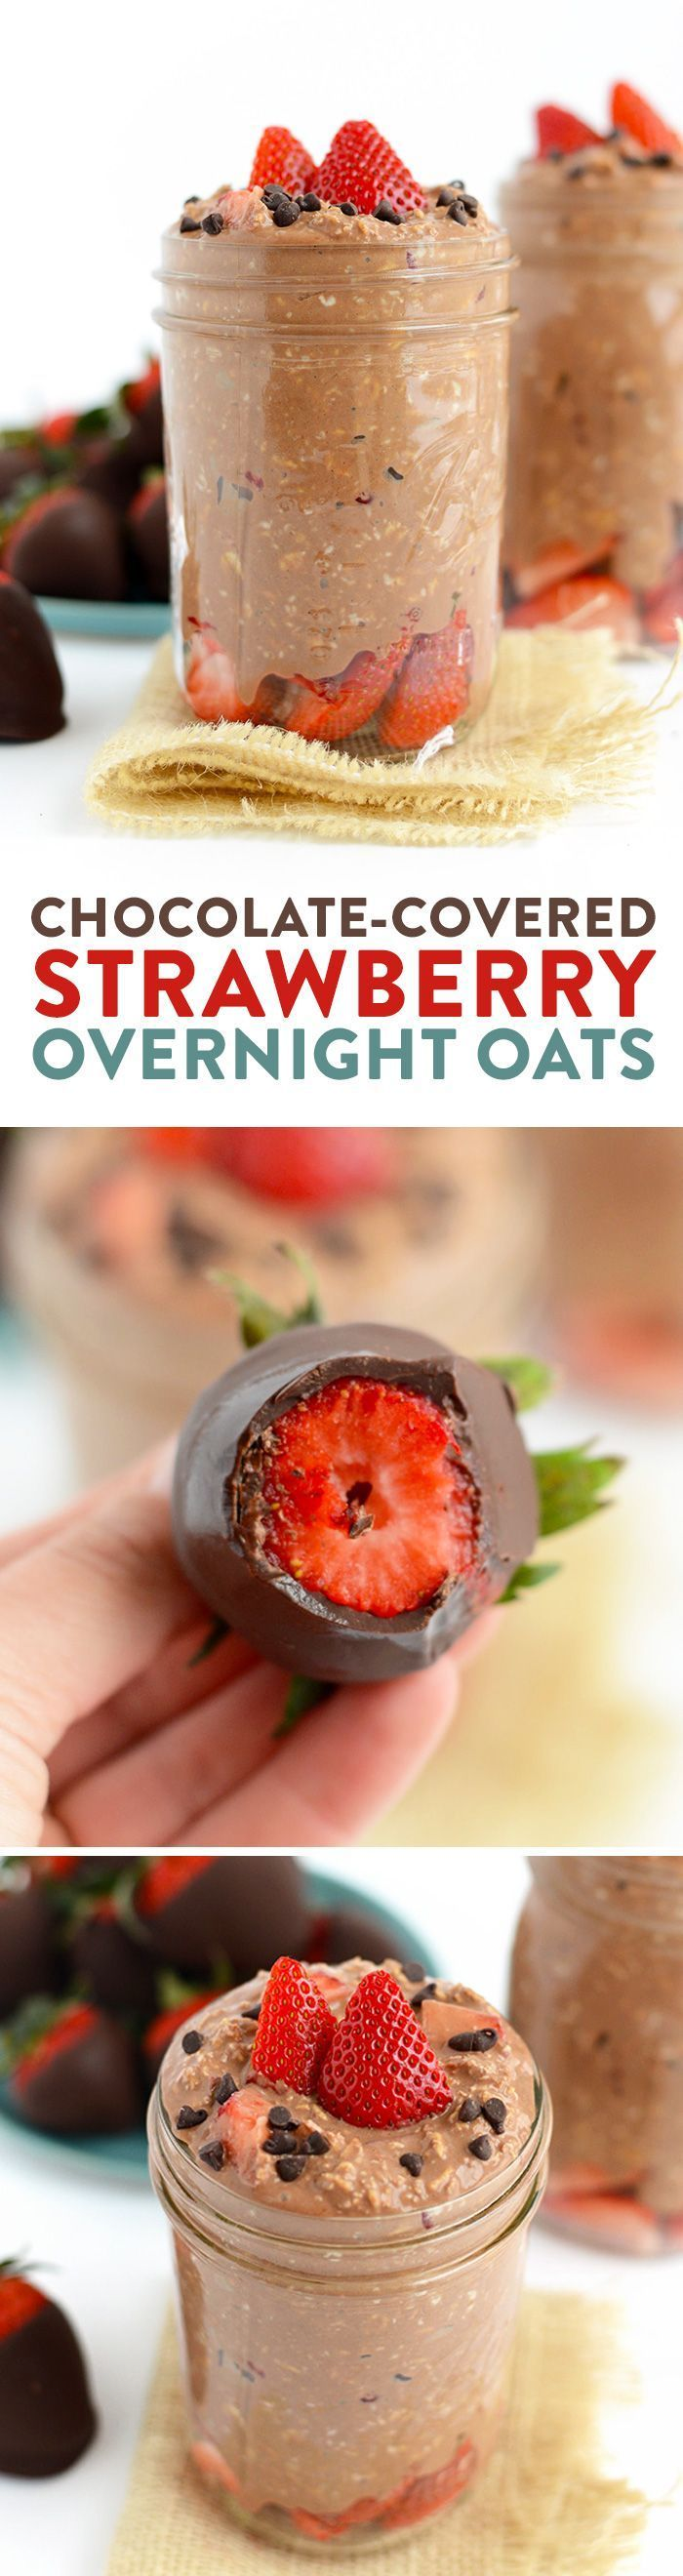 Chocolate covered strawberries for breakfast? YES PLEASE! Make this chocolate covered strawberry overnight oatmeal recipe and get 15 grams protein and a full serving of whole grains for breakfast! It's gluten-free and made with yummy chocolate protein pow